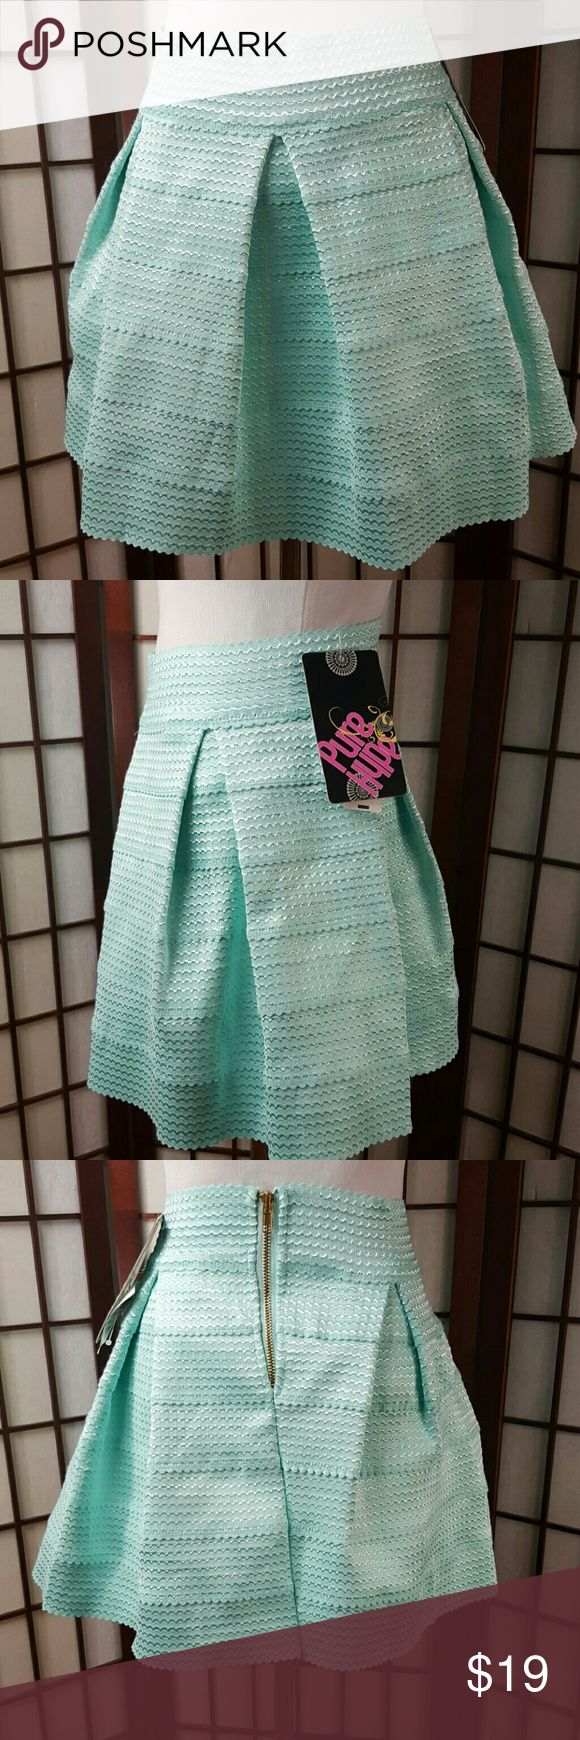 """Mint Green Pure Hype Pleated Flare Skirt New with tags Pure Hype size small Mint Green color Pleated Flare Skirt  Made of polyester  Stretchable  Measurements approximate  Waist 27"""" Length 15.5"""" pure hype Skirts"""